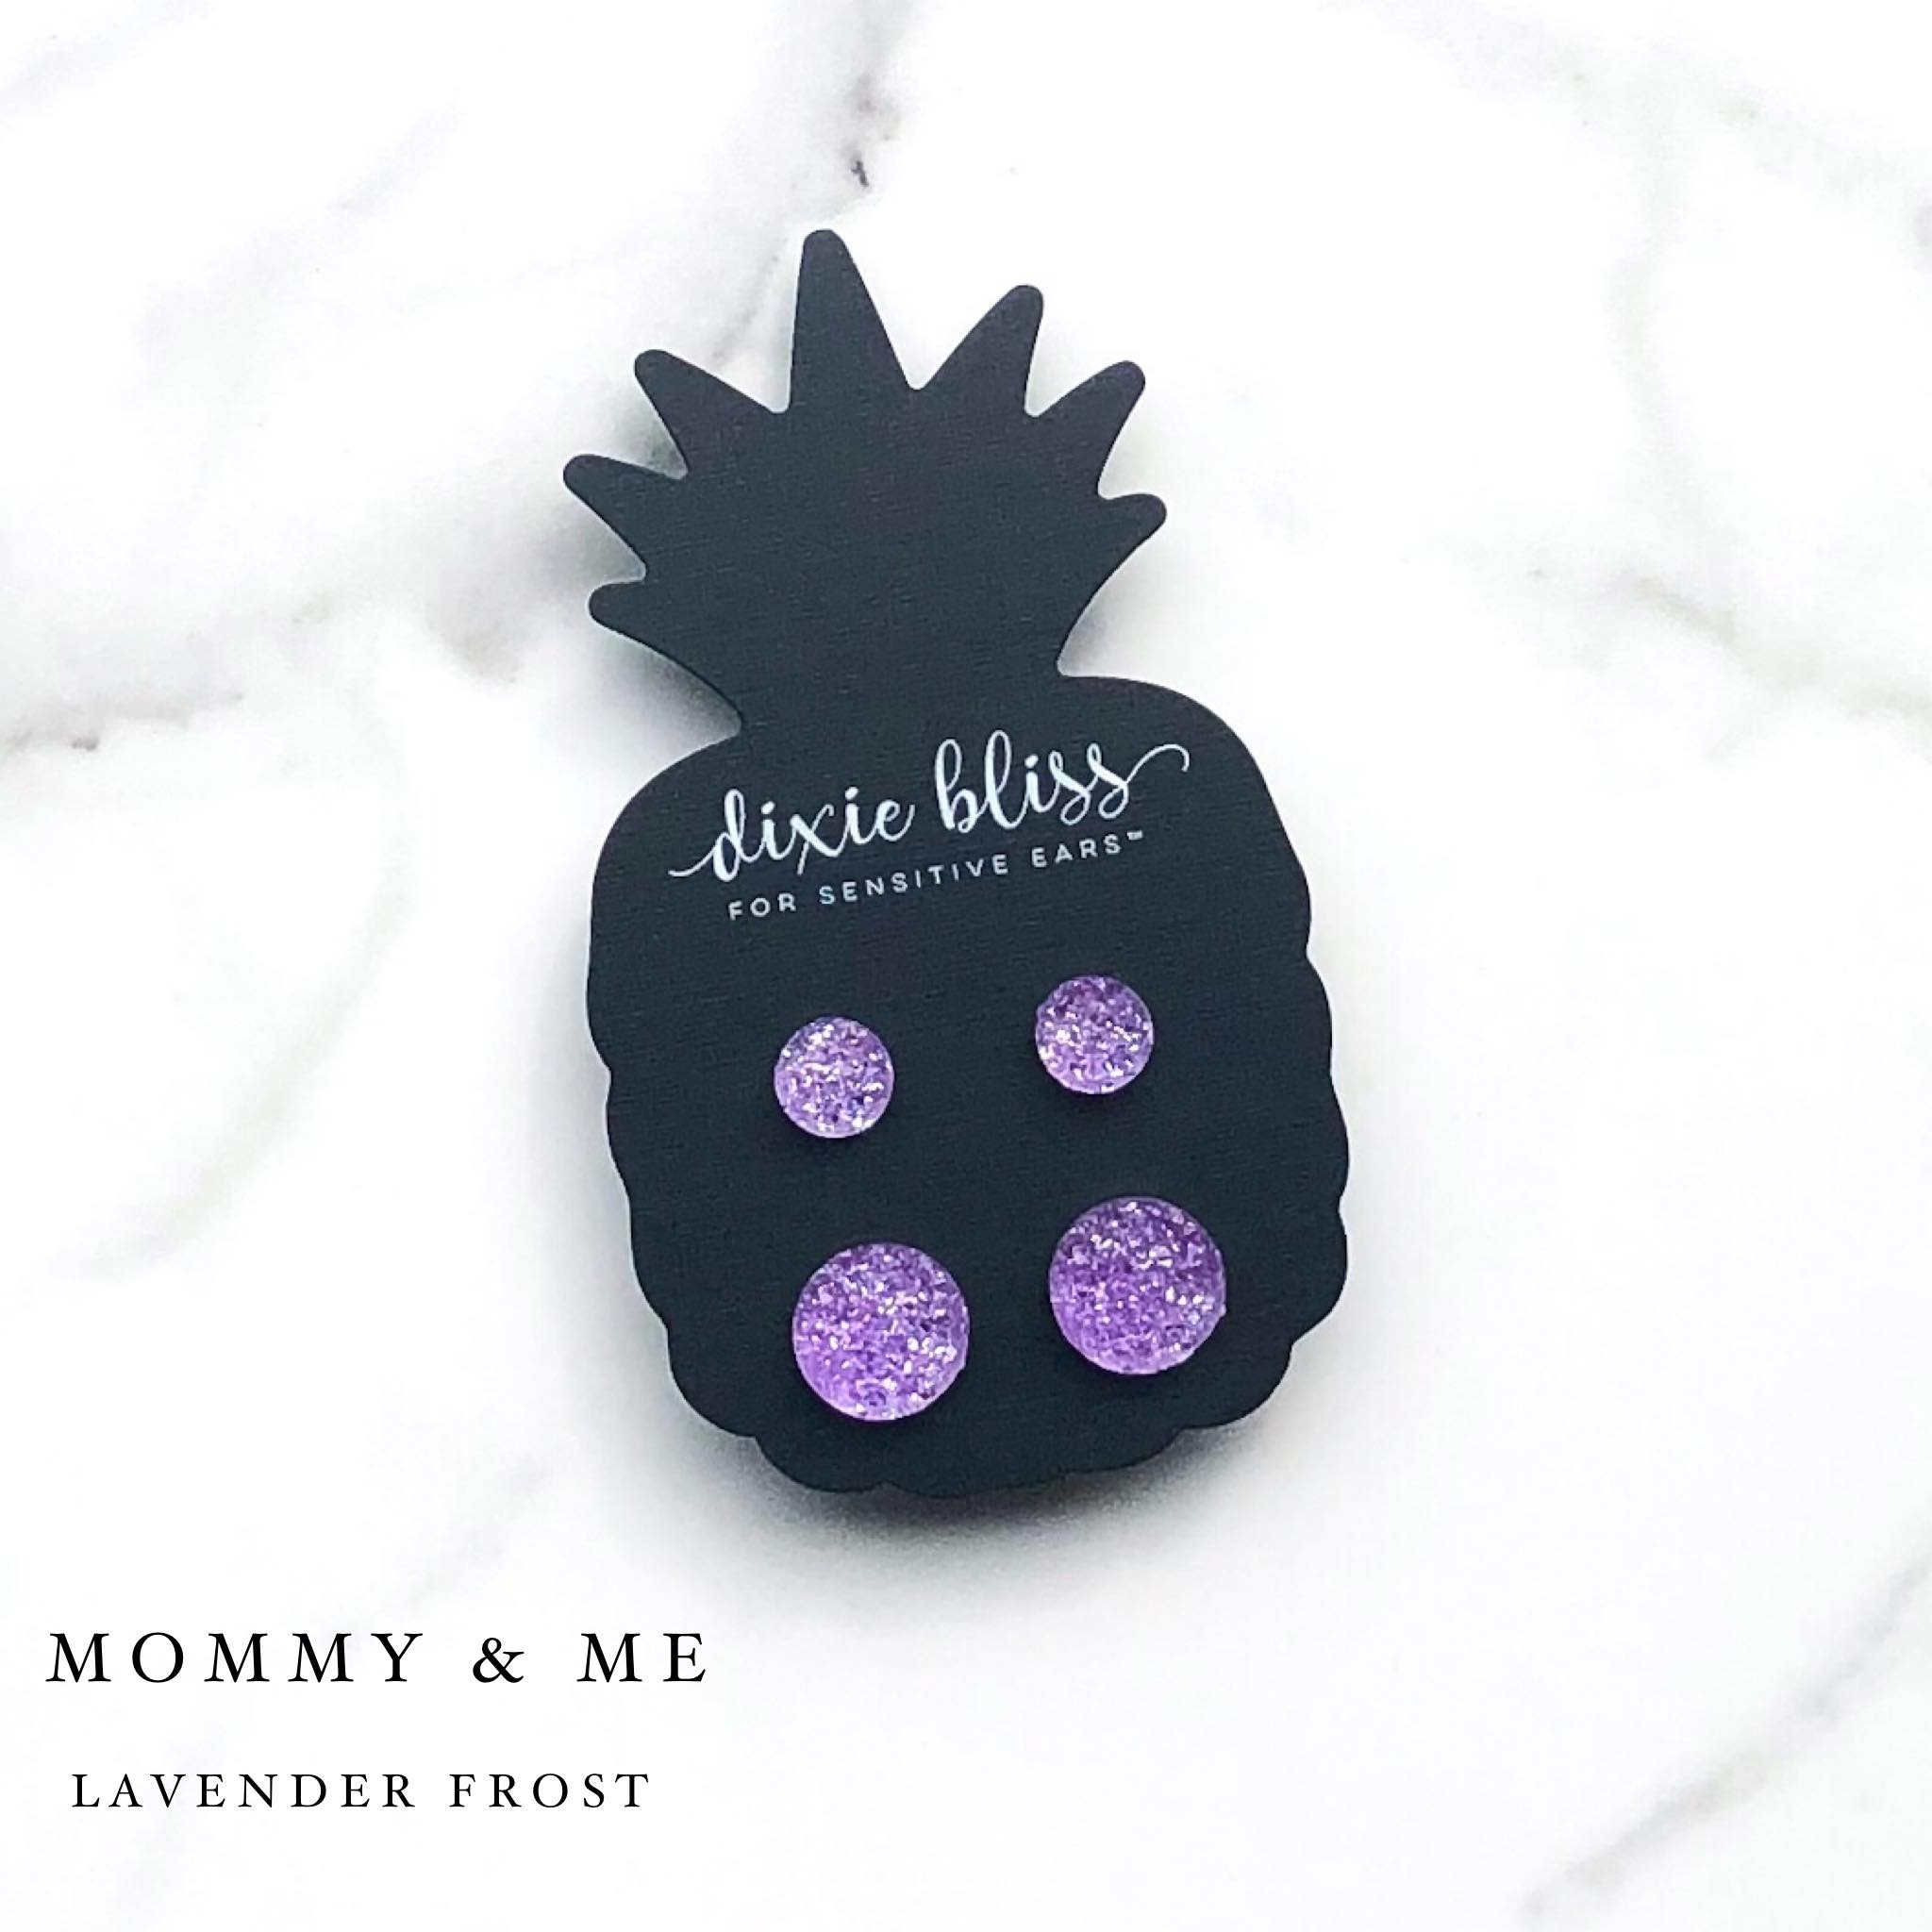 Mommy & Me Lavender - Dixie Bliss - Duo Stud Earring Set